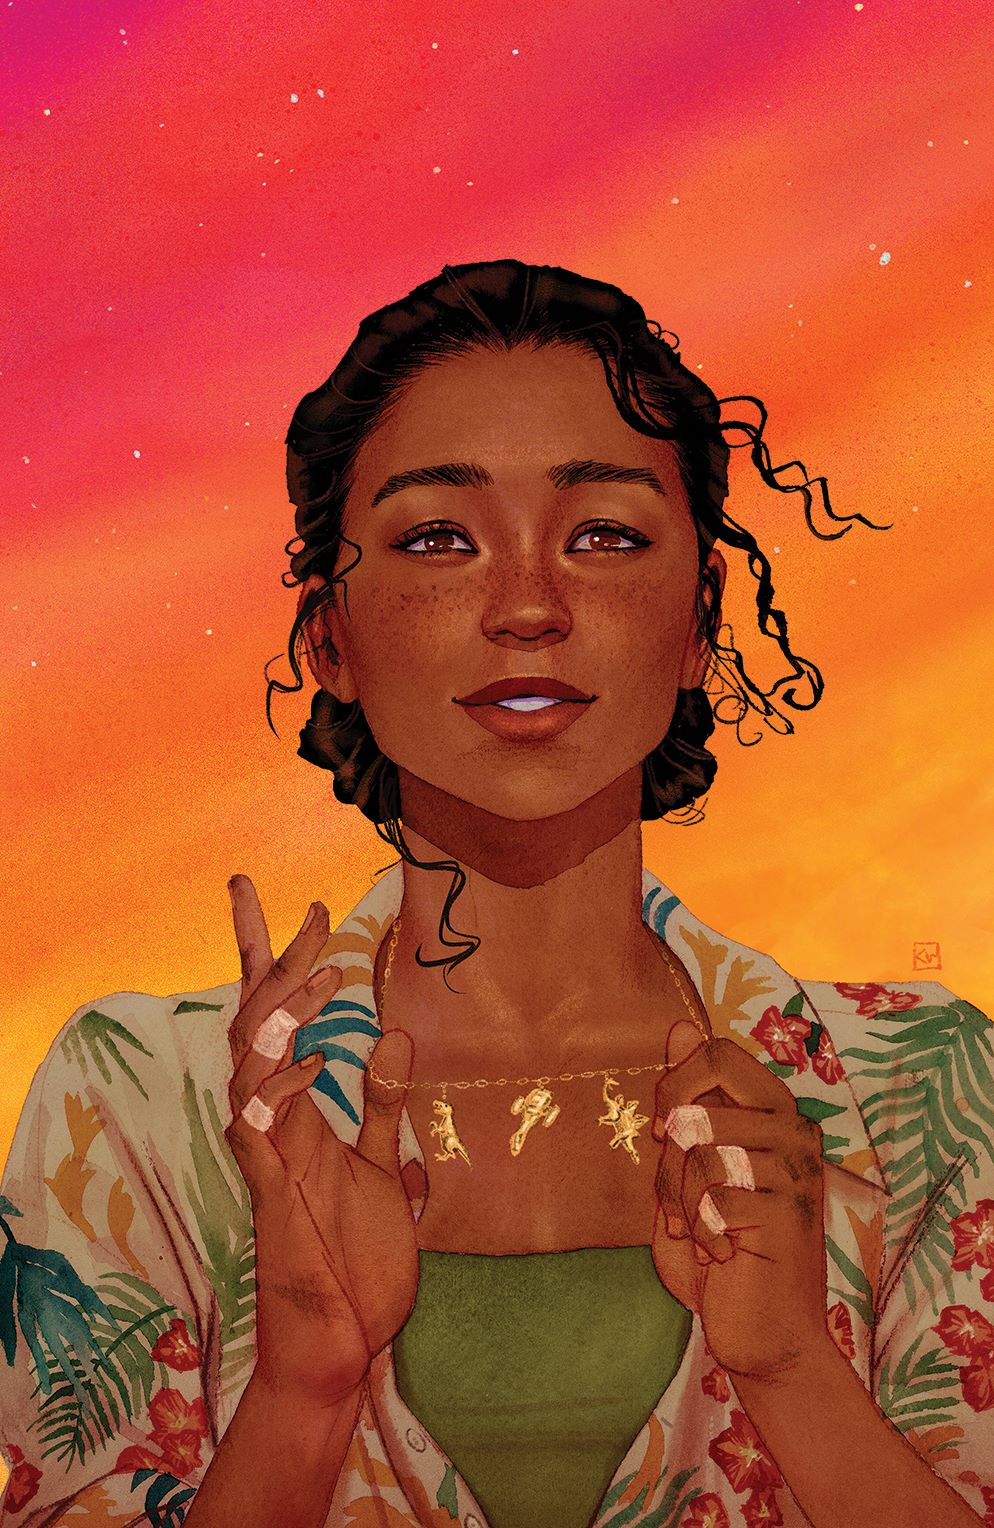 Firefly_BrandNewVerse_001_Cover_E_Variant ComicList Previews: FIREFLY BRAND NEW 'VERSE #1